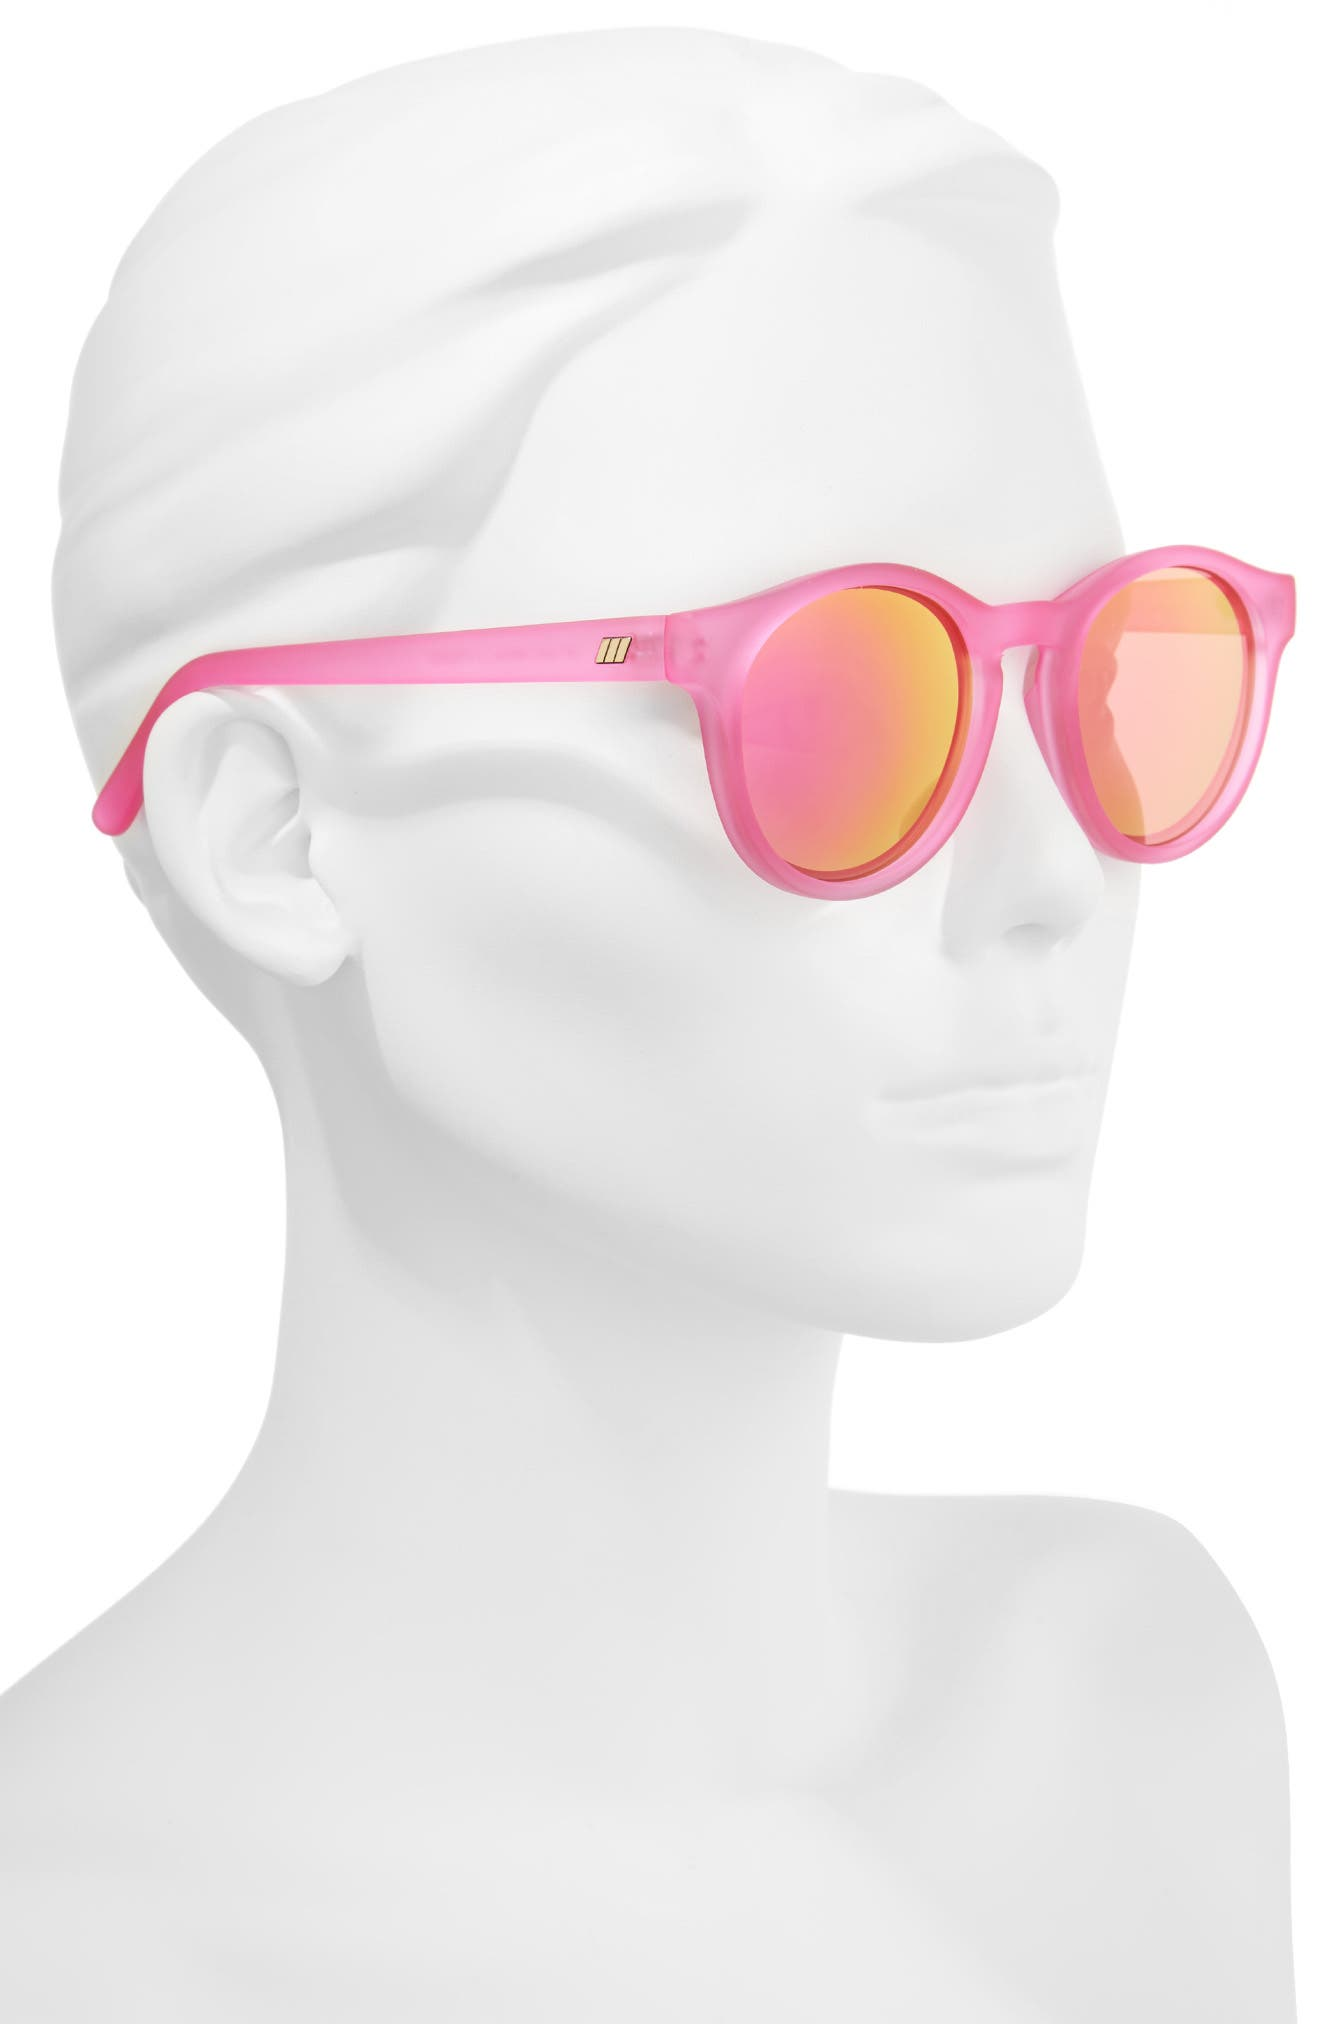 Hey Macarena 51mm Round Sunglasses,                             Alternate thumbnail 2, color,                             Matte Magenta